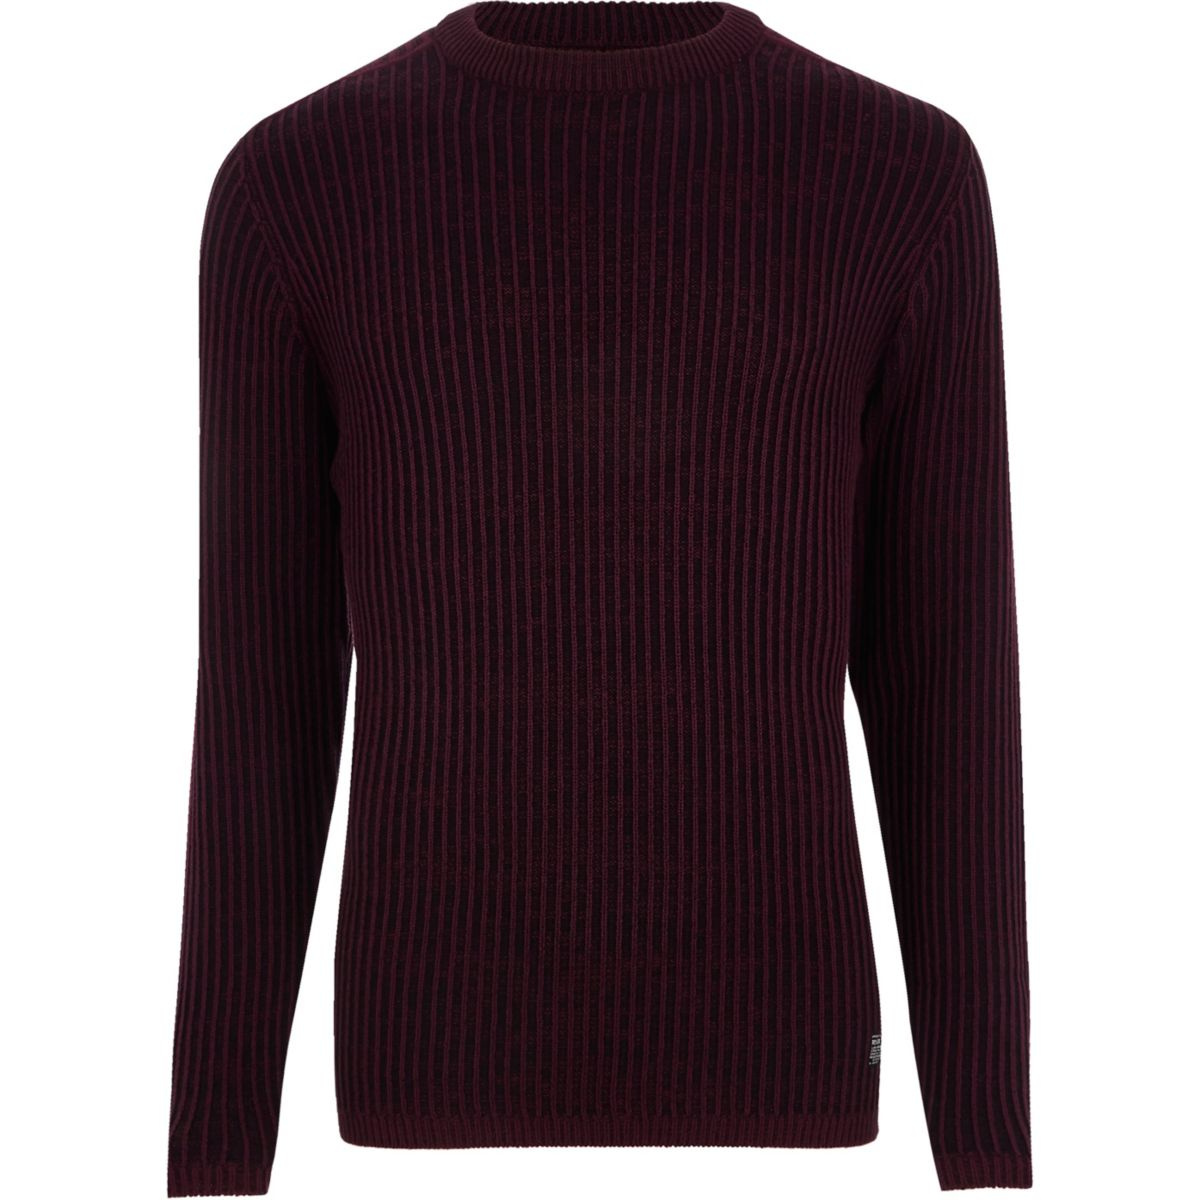 Burgundy ribbed muscle fit knit jumper